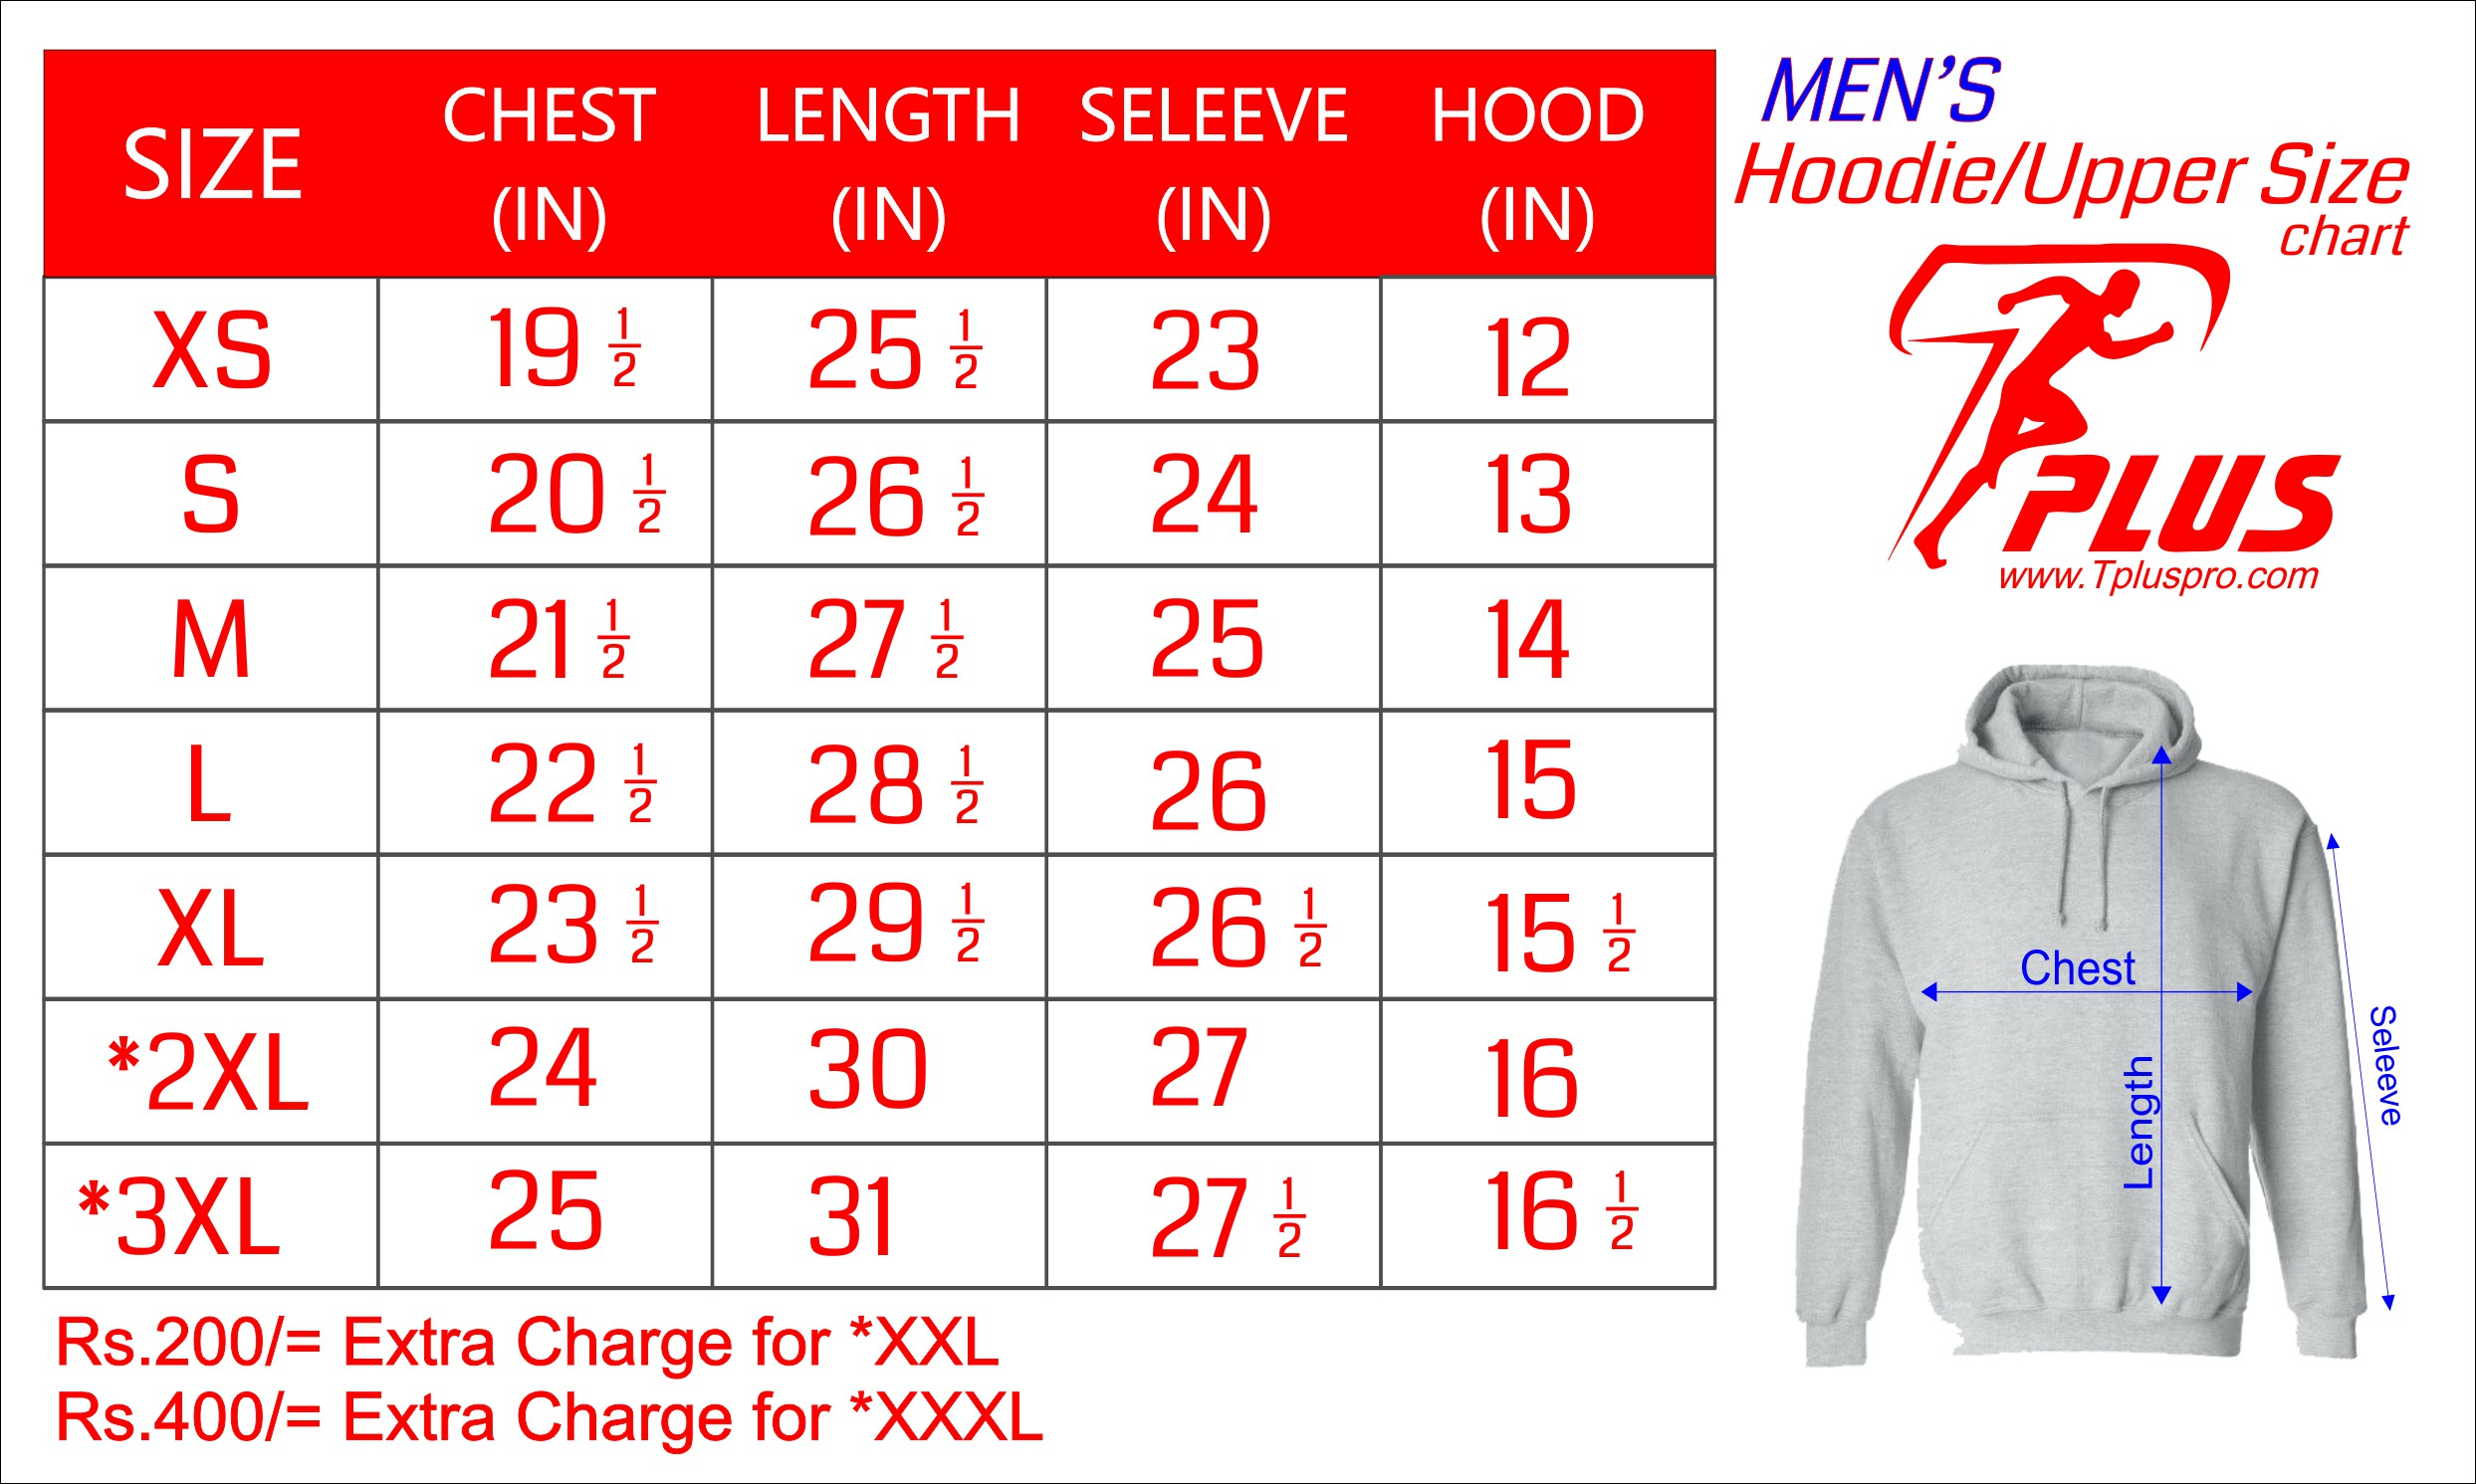 Upper & Hoodie Size Chart